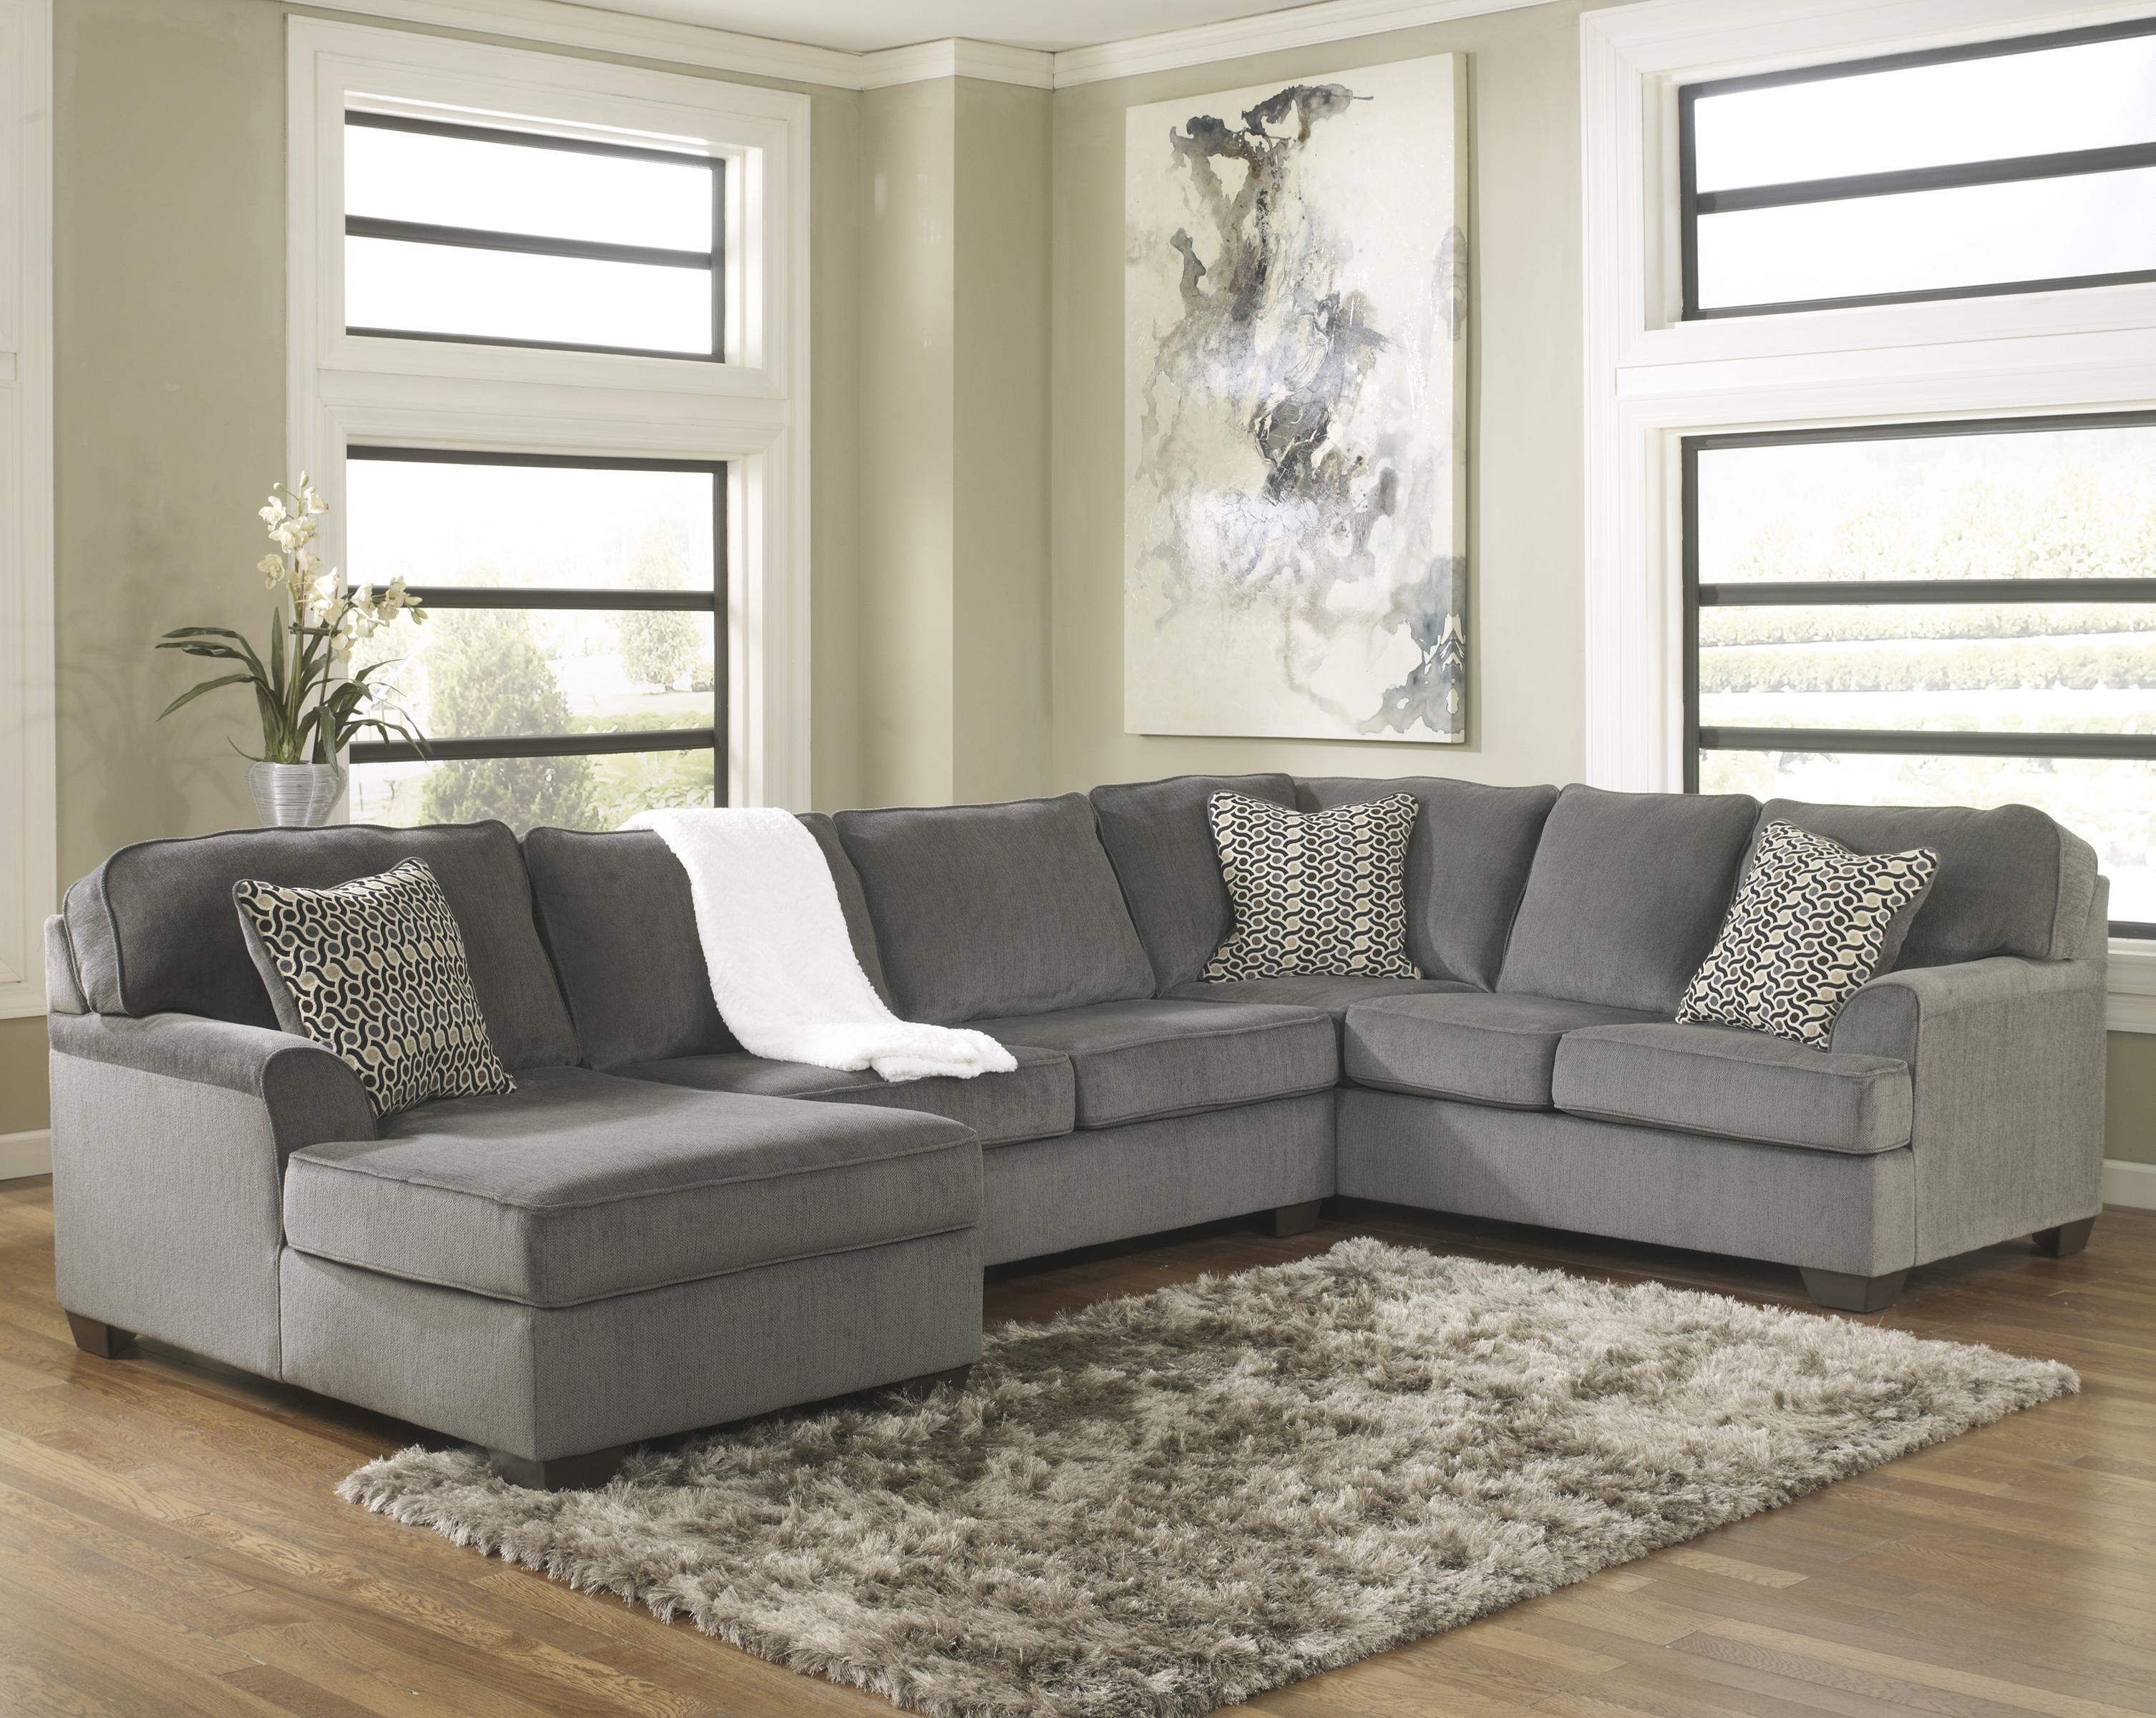 Sectional Bed Sofa Loric Smoke Contemporary 3 Piece Sectional With Left Chaise By Ashley Furniture At John V Schultz Furniture